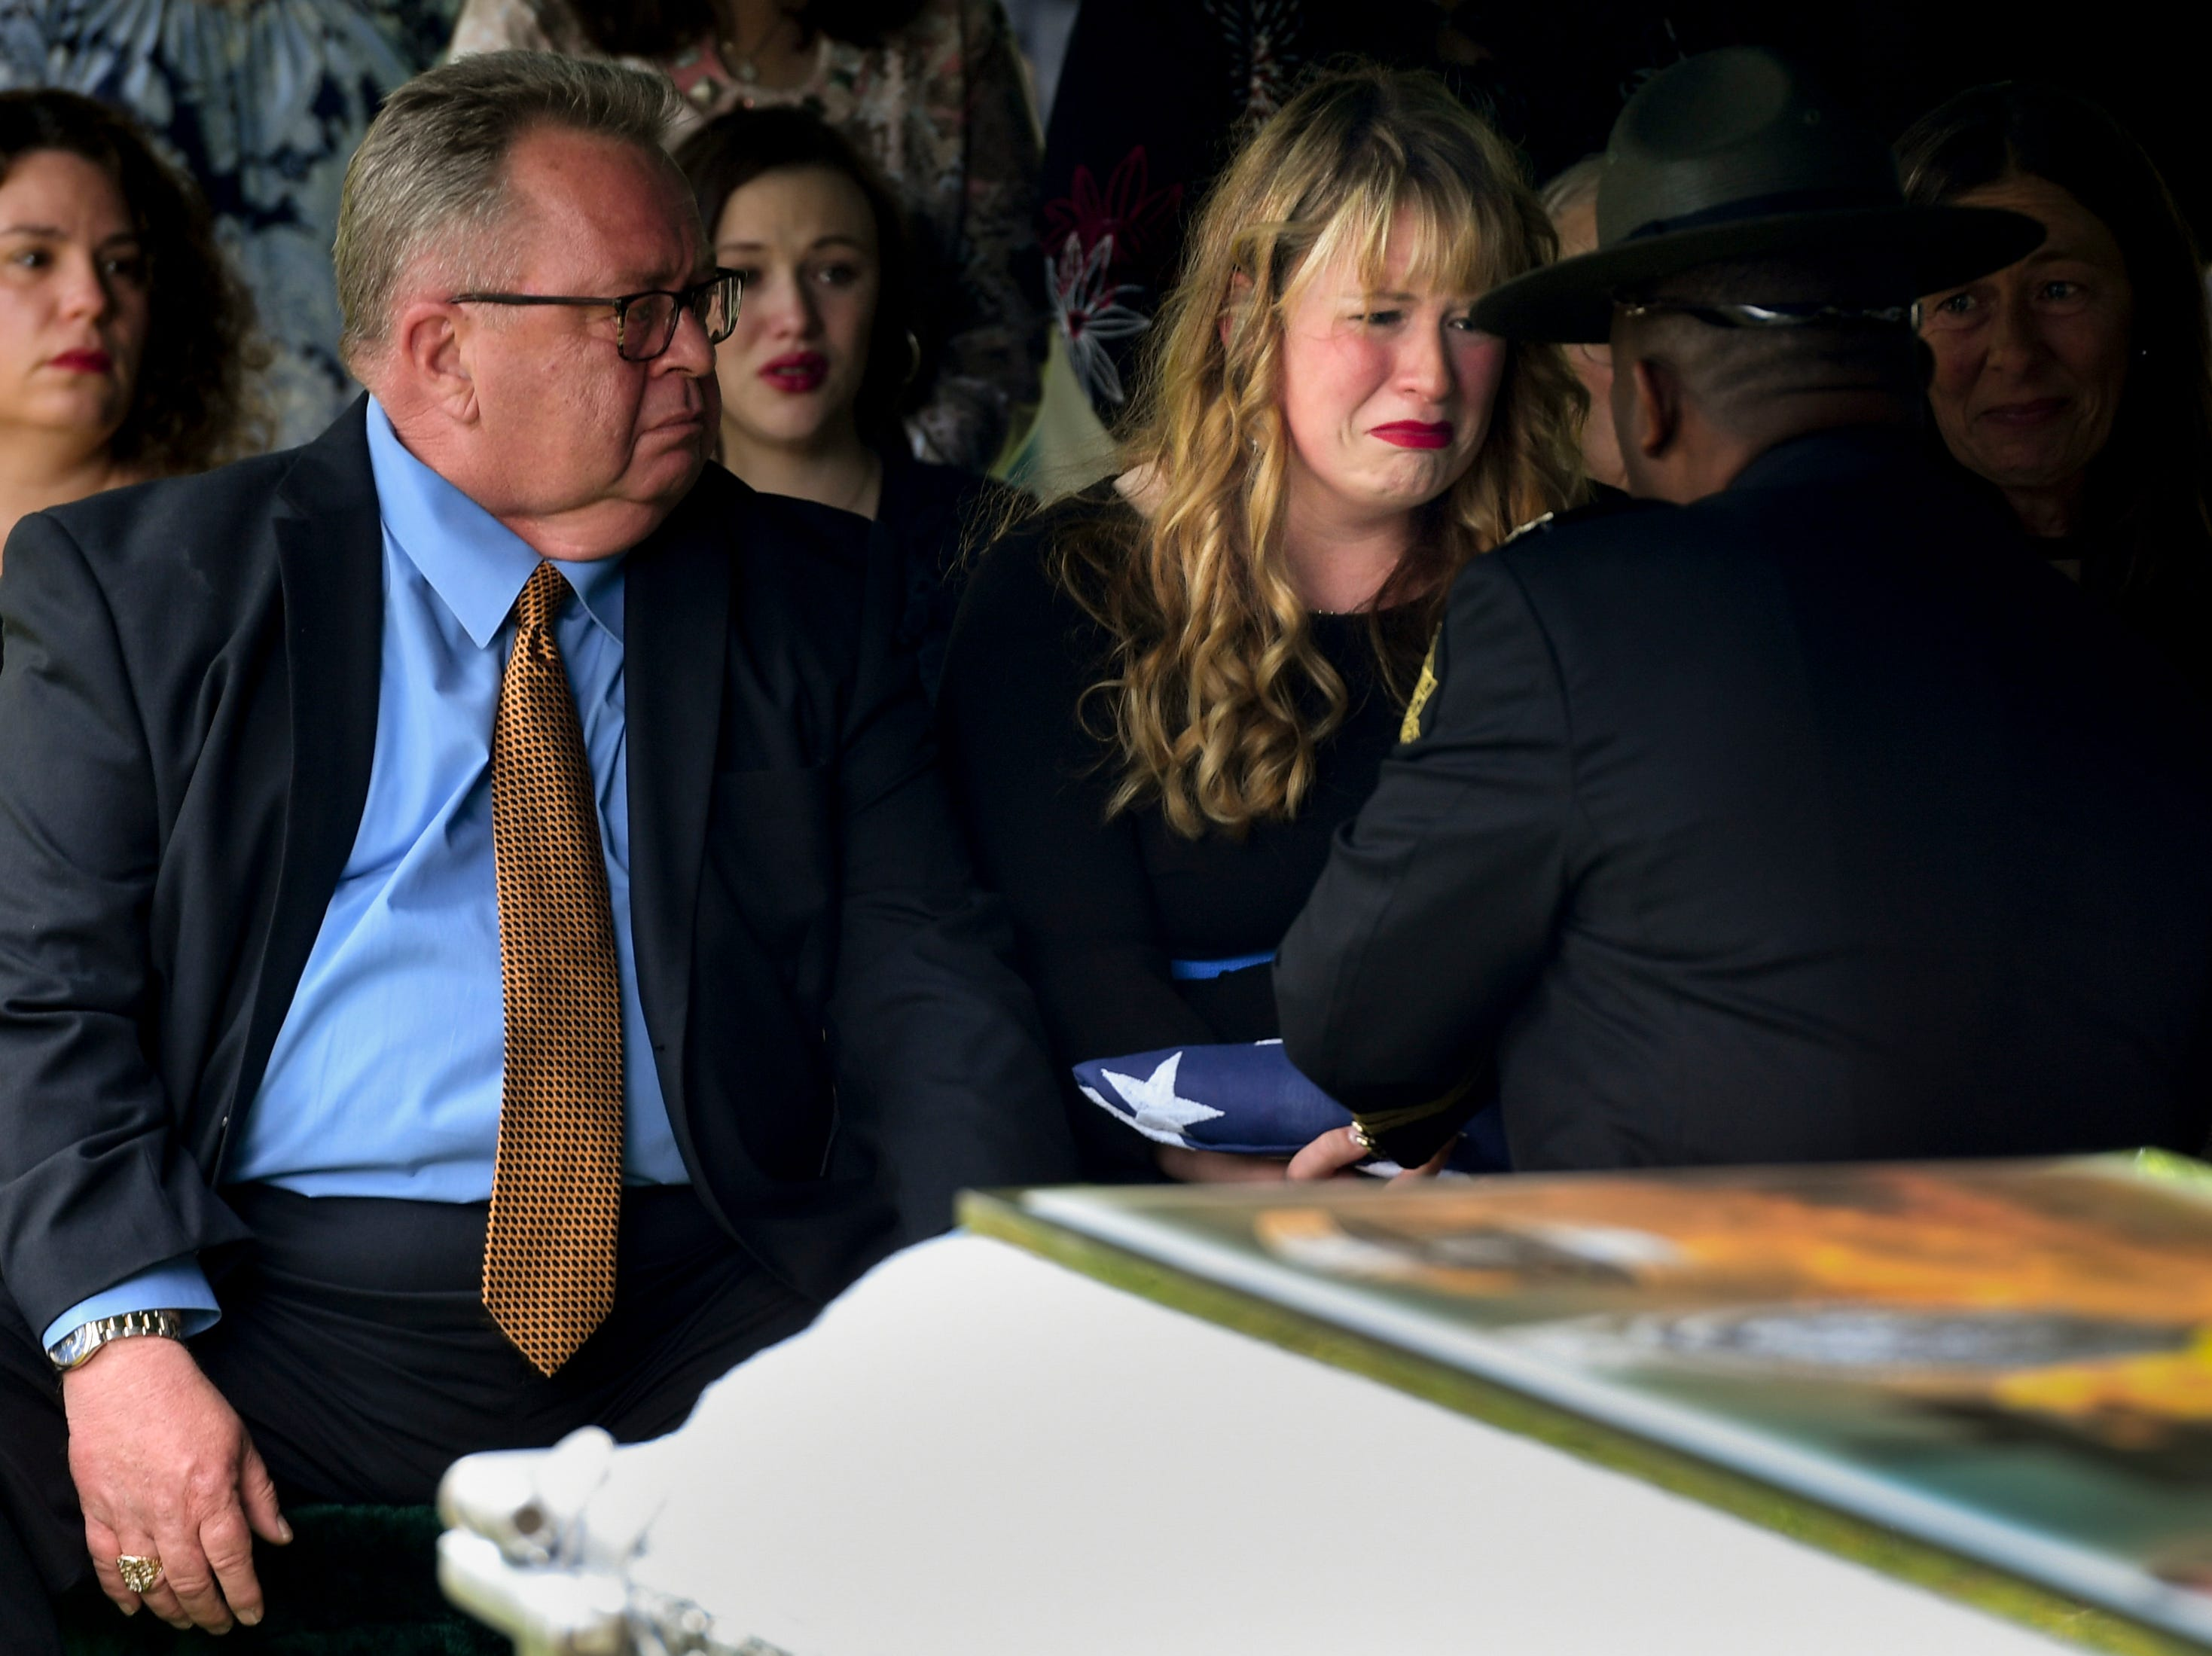 The flag is presented to Anna Lax Gatti, wife of Matthew Gatti, during the burial of Tennessee State Trooper Matthew Gatti at Ridgecrest Cemetery in Jackson, Tenn., Monday, May 13, 2019. Gatti died in the line of duty in an accident while responding to a car fire on I-40 in Madison County on May 6.